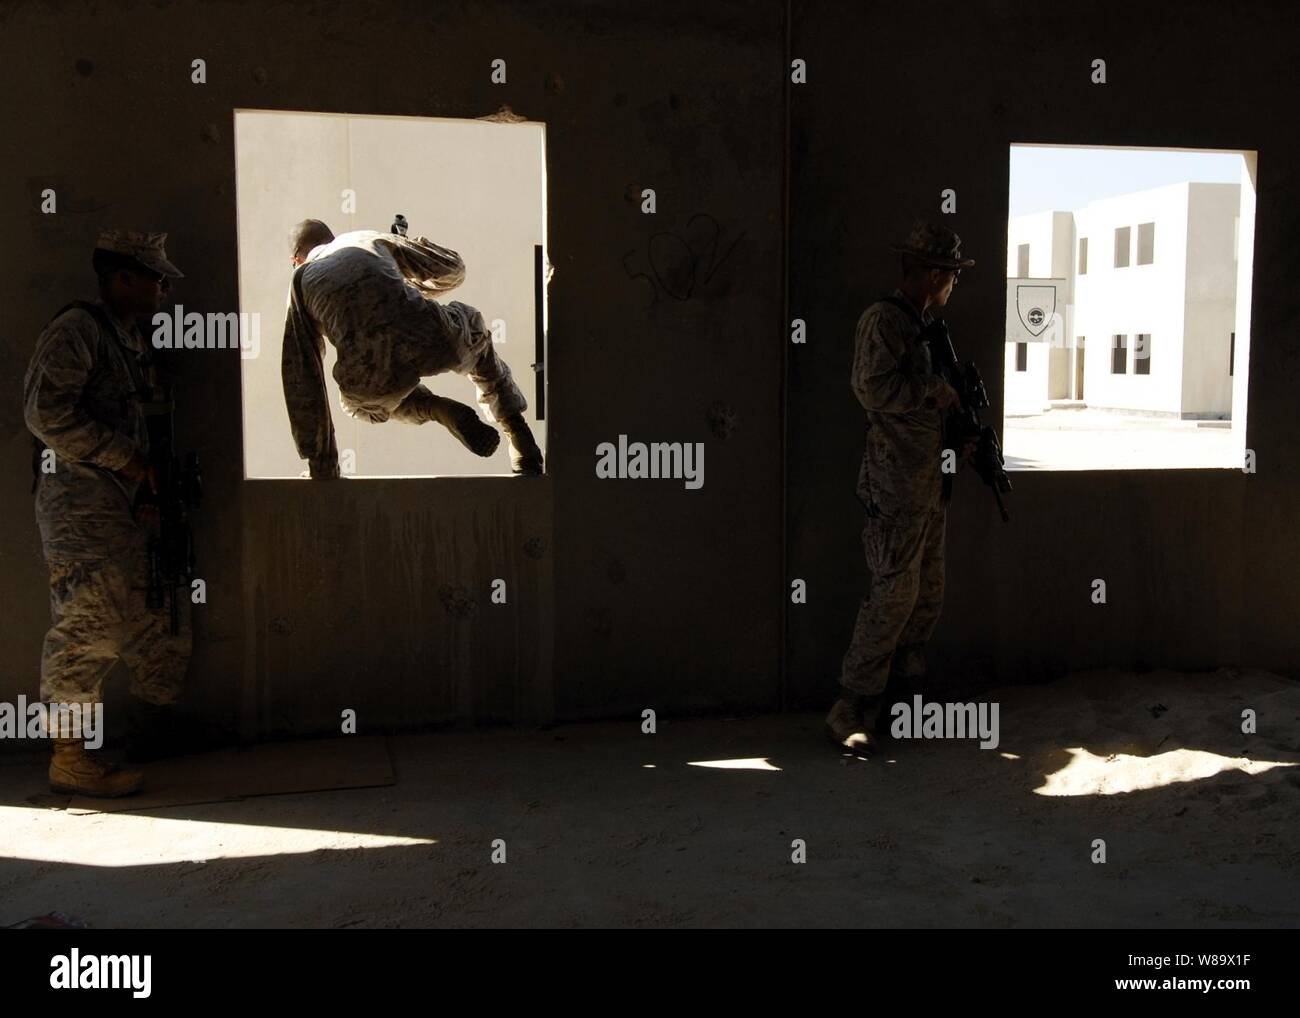 U.S. Marine Corps Lance Cpls. Travis Beckford (left) and Kyle Nance and Cpl. Ryan Burke (right), all from the 4th Platoon, Fleet Anti-terrorism Security Team, advance through buildings during a bilateral urban assault training in Sheik Isa, Bahrain, on Nov. 20, 2008.  The Marines are deployed to the U.S. Navy 5th fleet area of operations in support of maritime security operations. Stock Photo